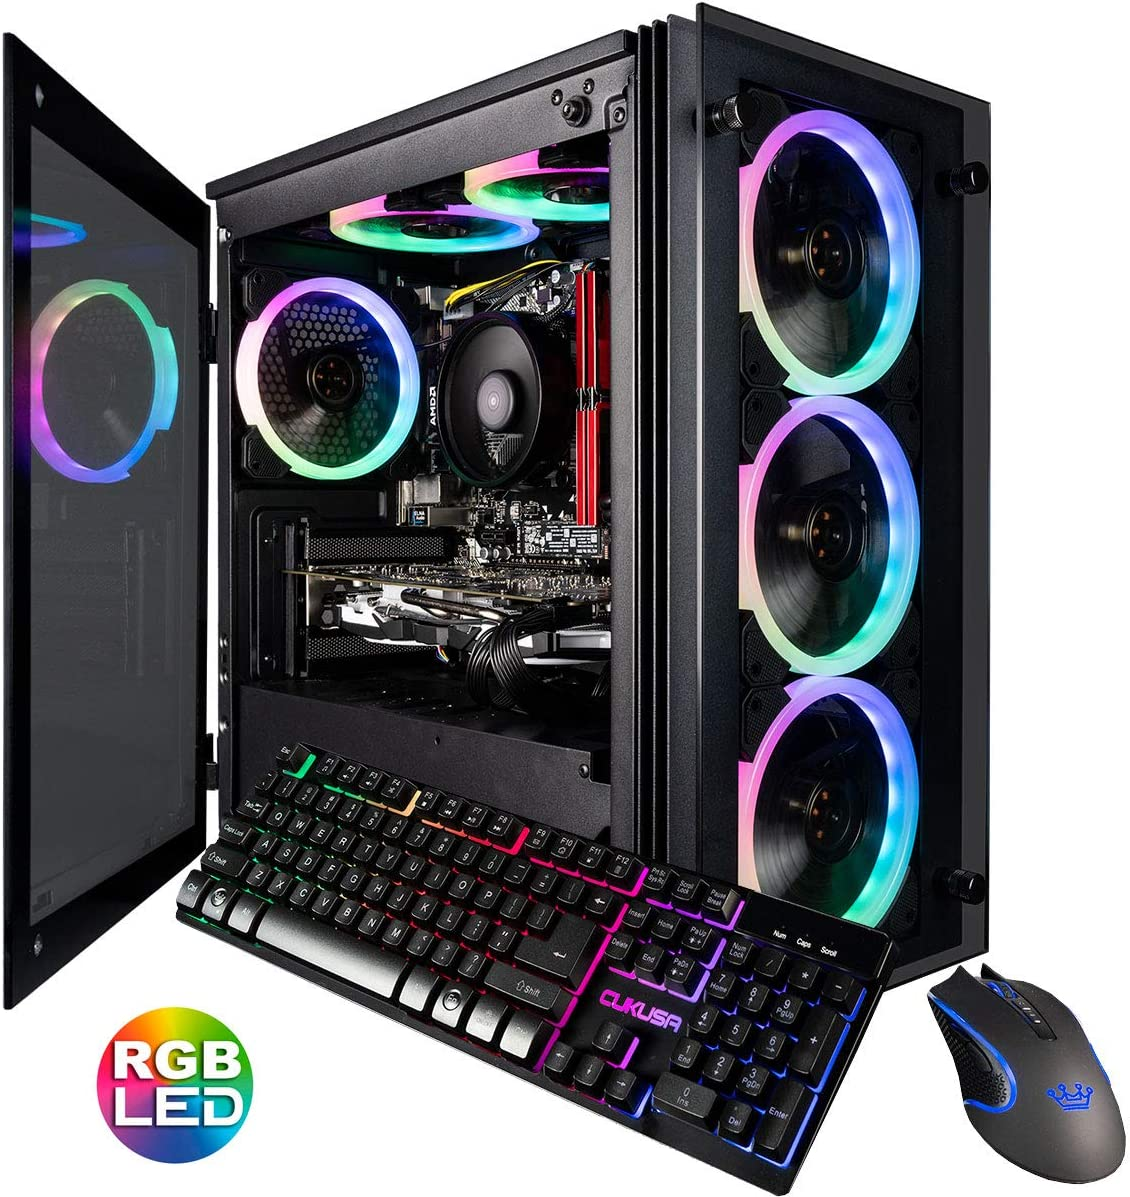 CUK Stratos Micro Gaming Desktop (AMD Ryzen 7, 32GB DDR4 RAM, 1TB NVMe SSD, NVIDIA GeForce RTX 2070 8GB, 600W Gold PSU, Windows 10 Home) Video Editing Gamer PC Computer